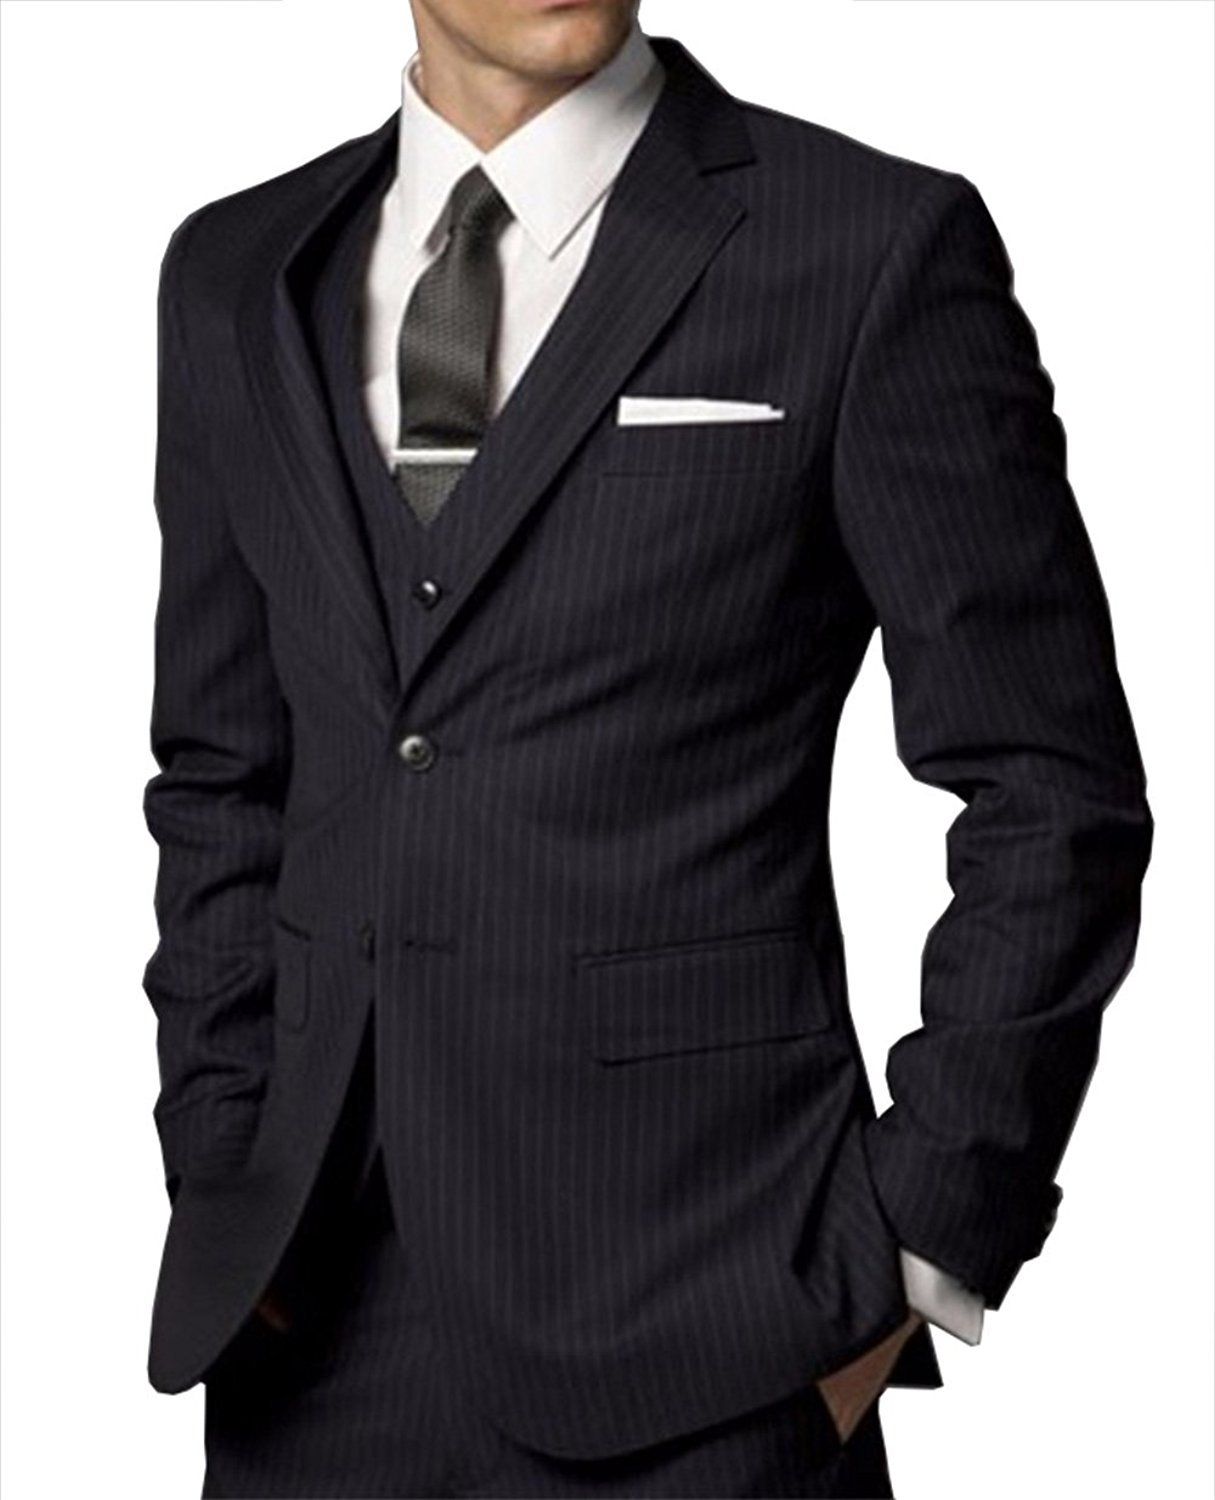 dd68997e3765 Get Quotations · Fitty Lell Men's Suit Slim Fit Notch Lapel Formal Business Men  Suit Black Three Piece Jacket